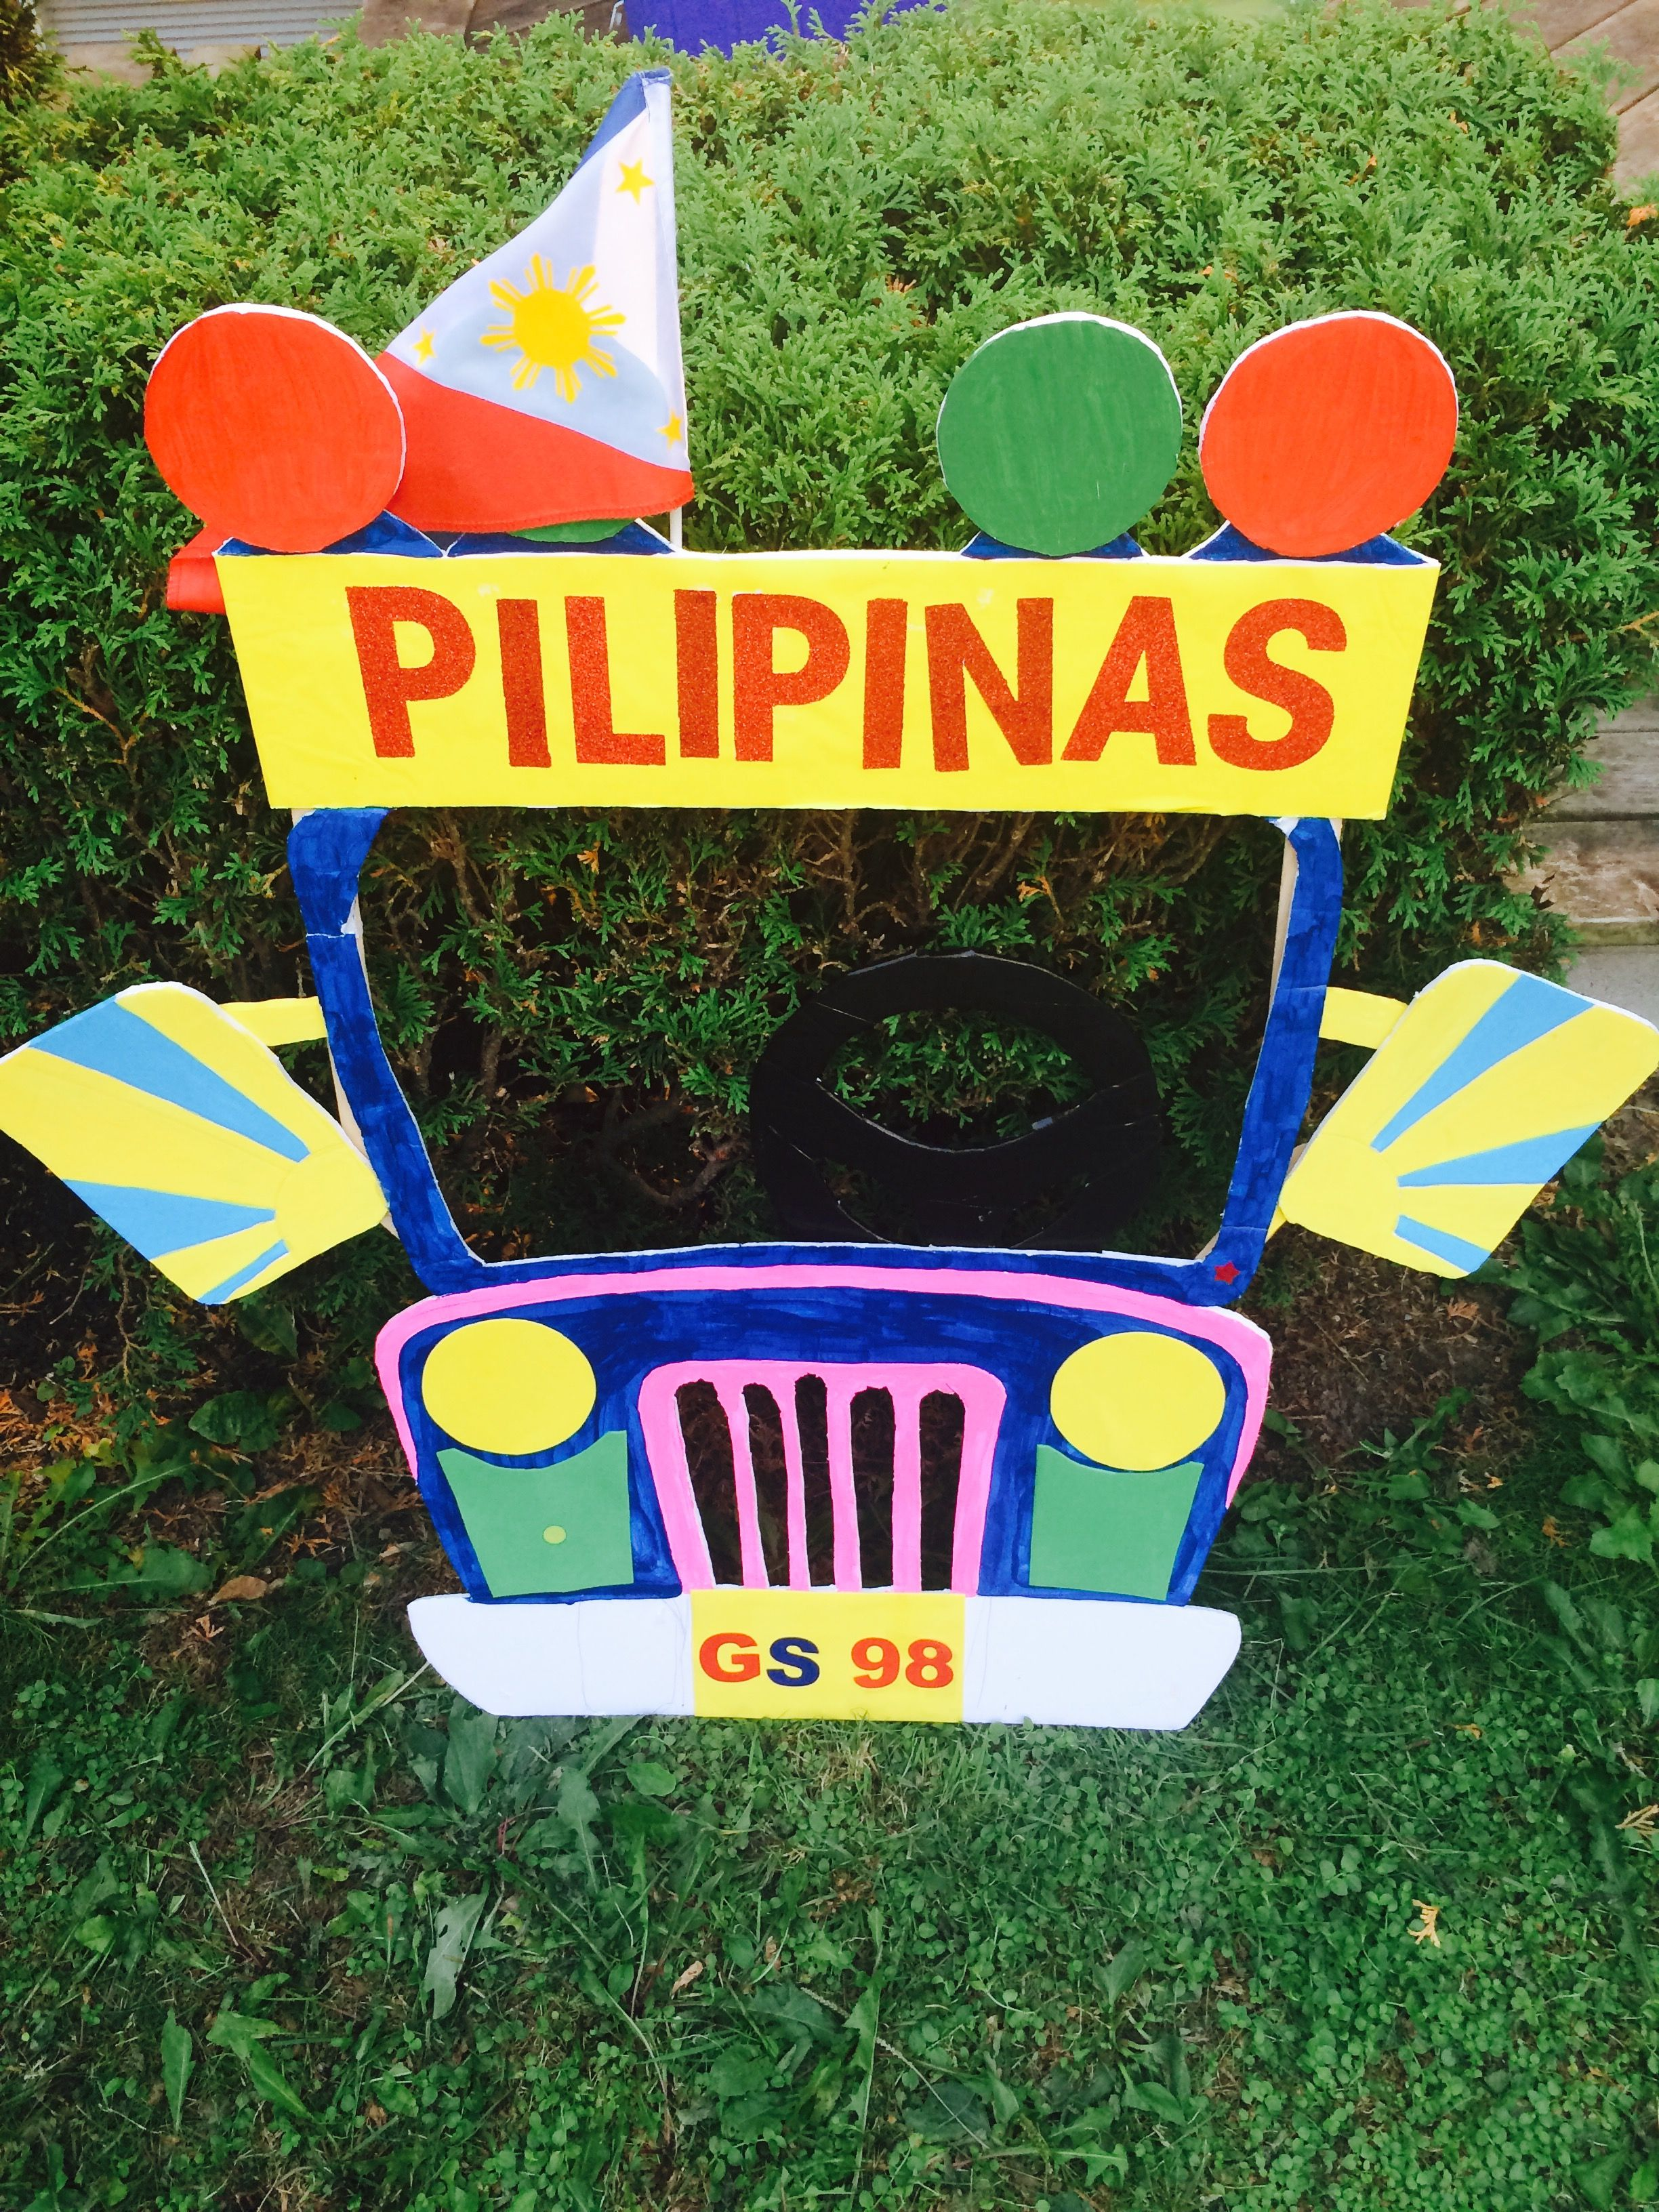 Christmas Jeepney.Jeepney Party Themes In 2019 Fiesta Theme Party Party